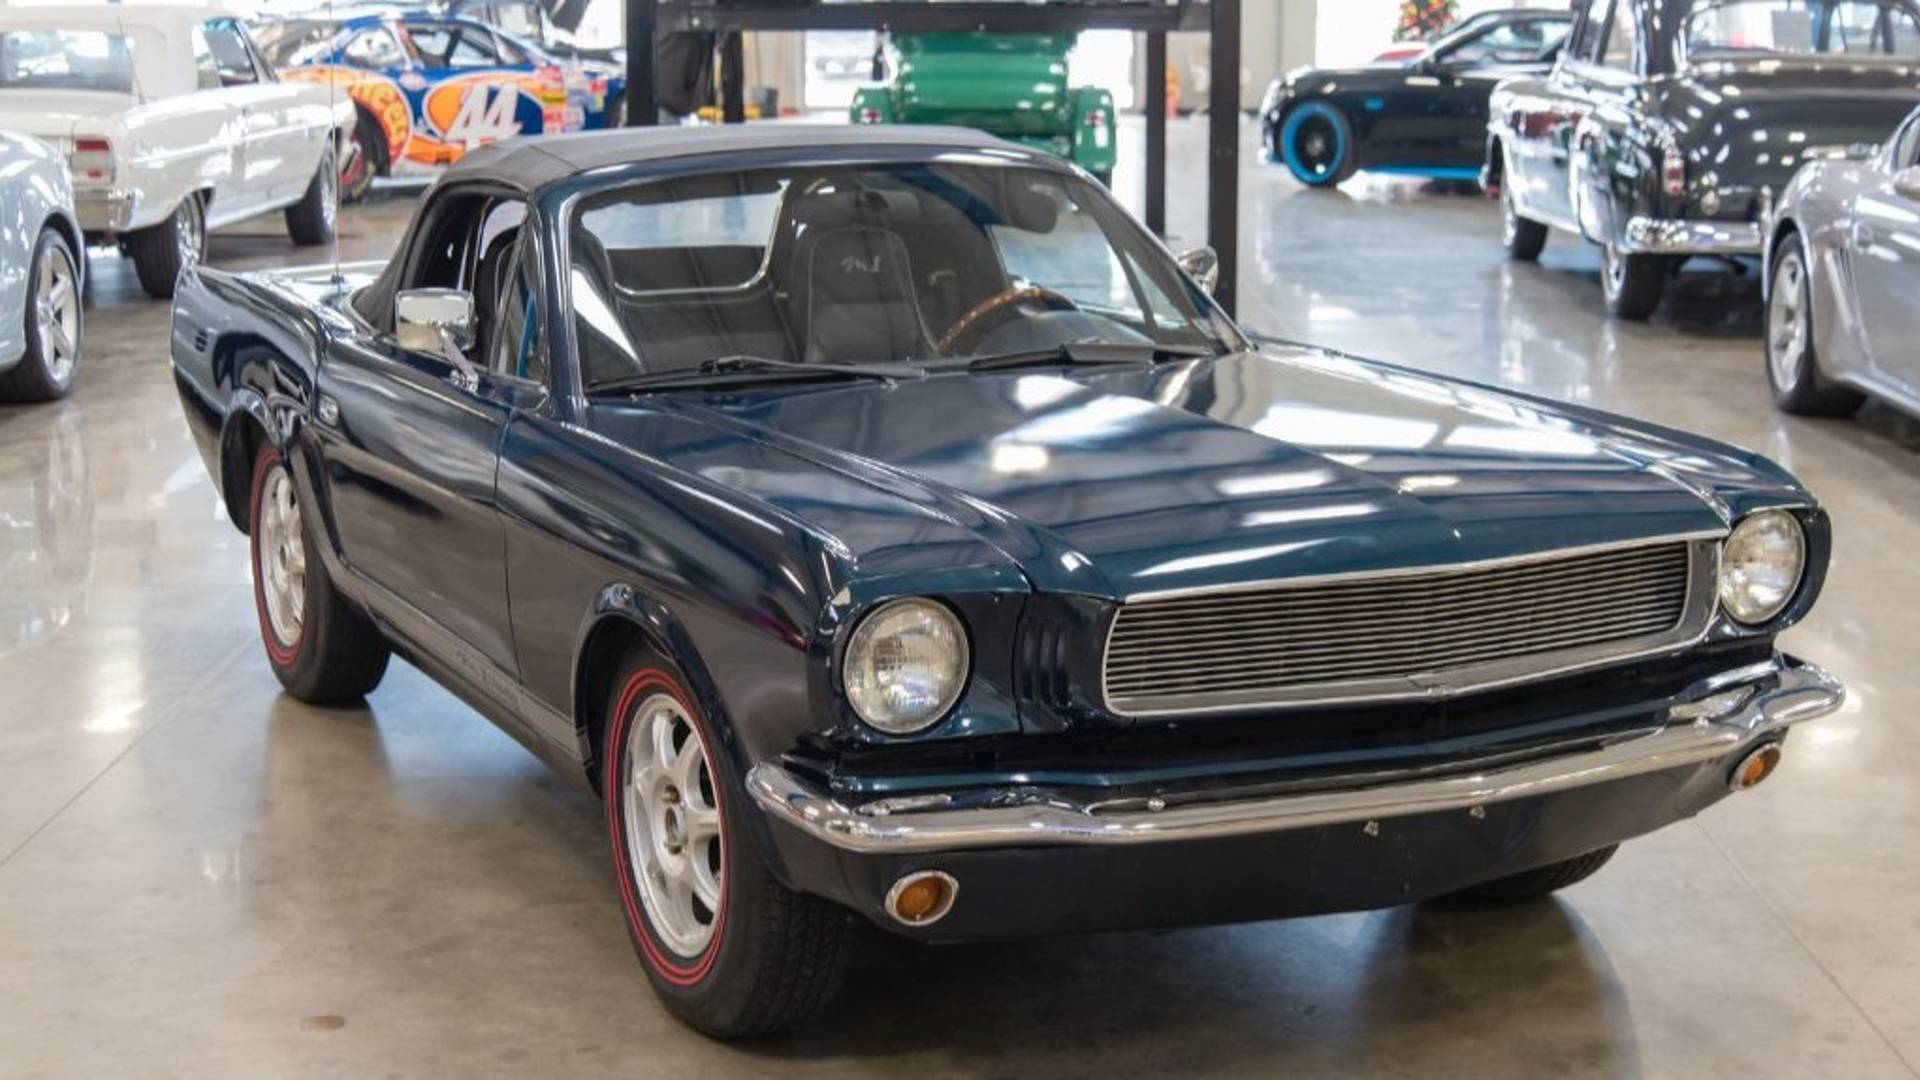 This Classic Mustang Is Actually A Mazda Miata, And It's For Sale